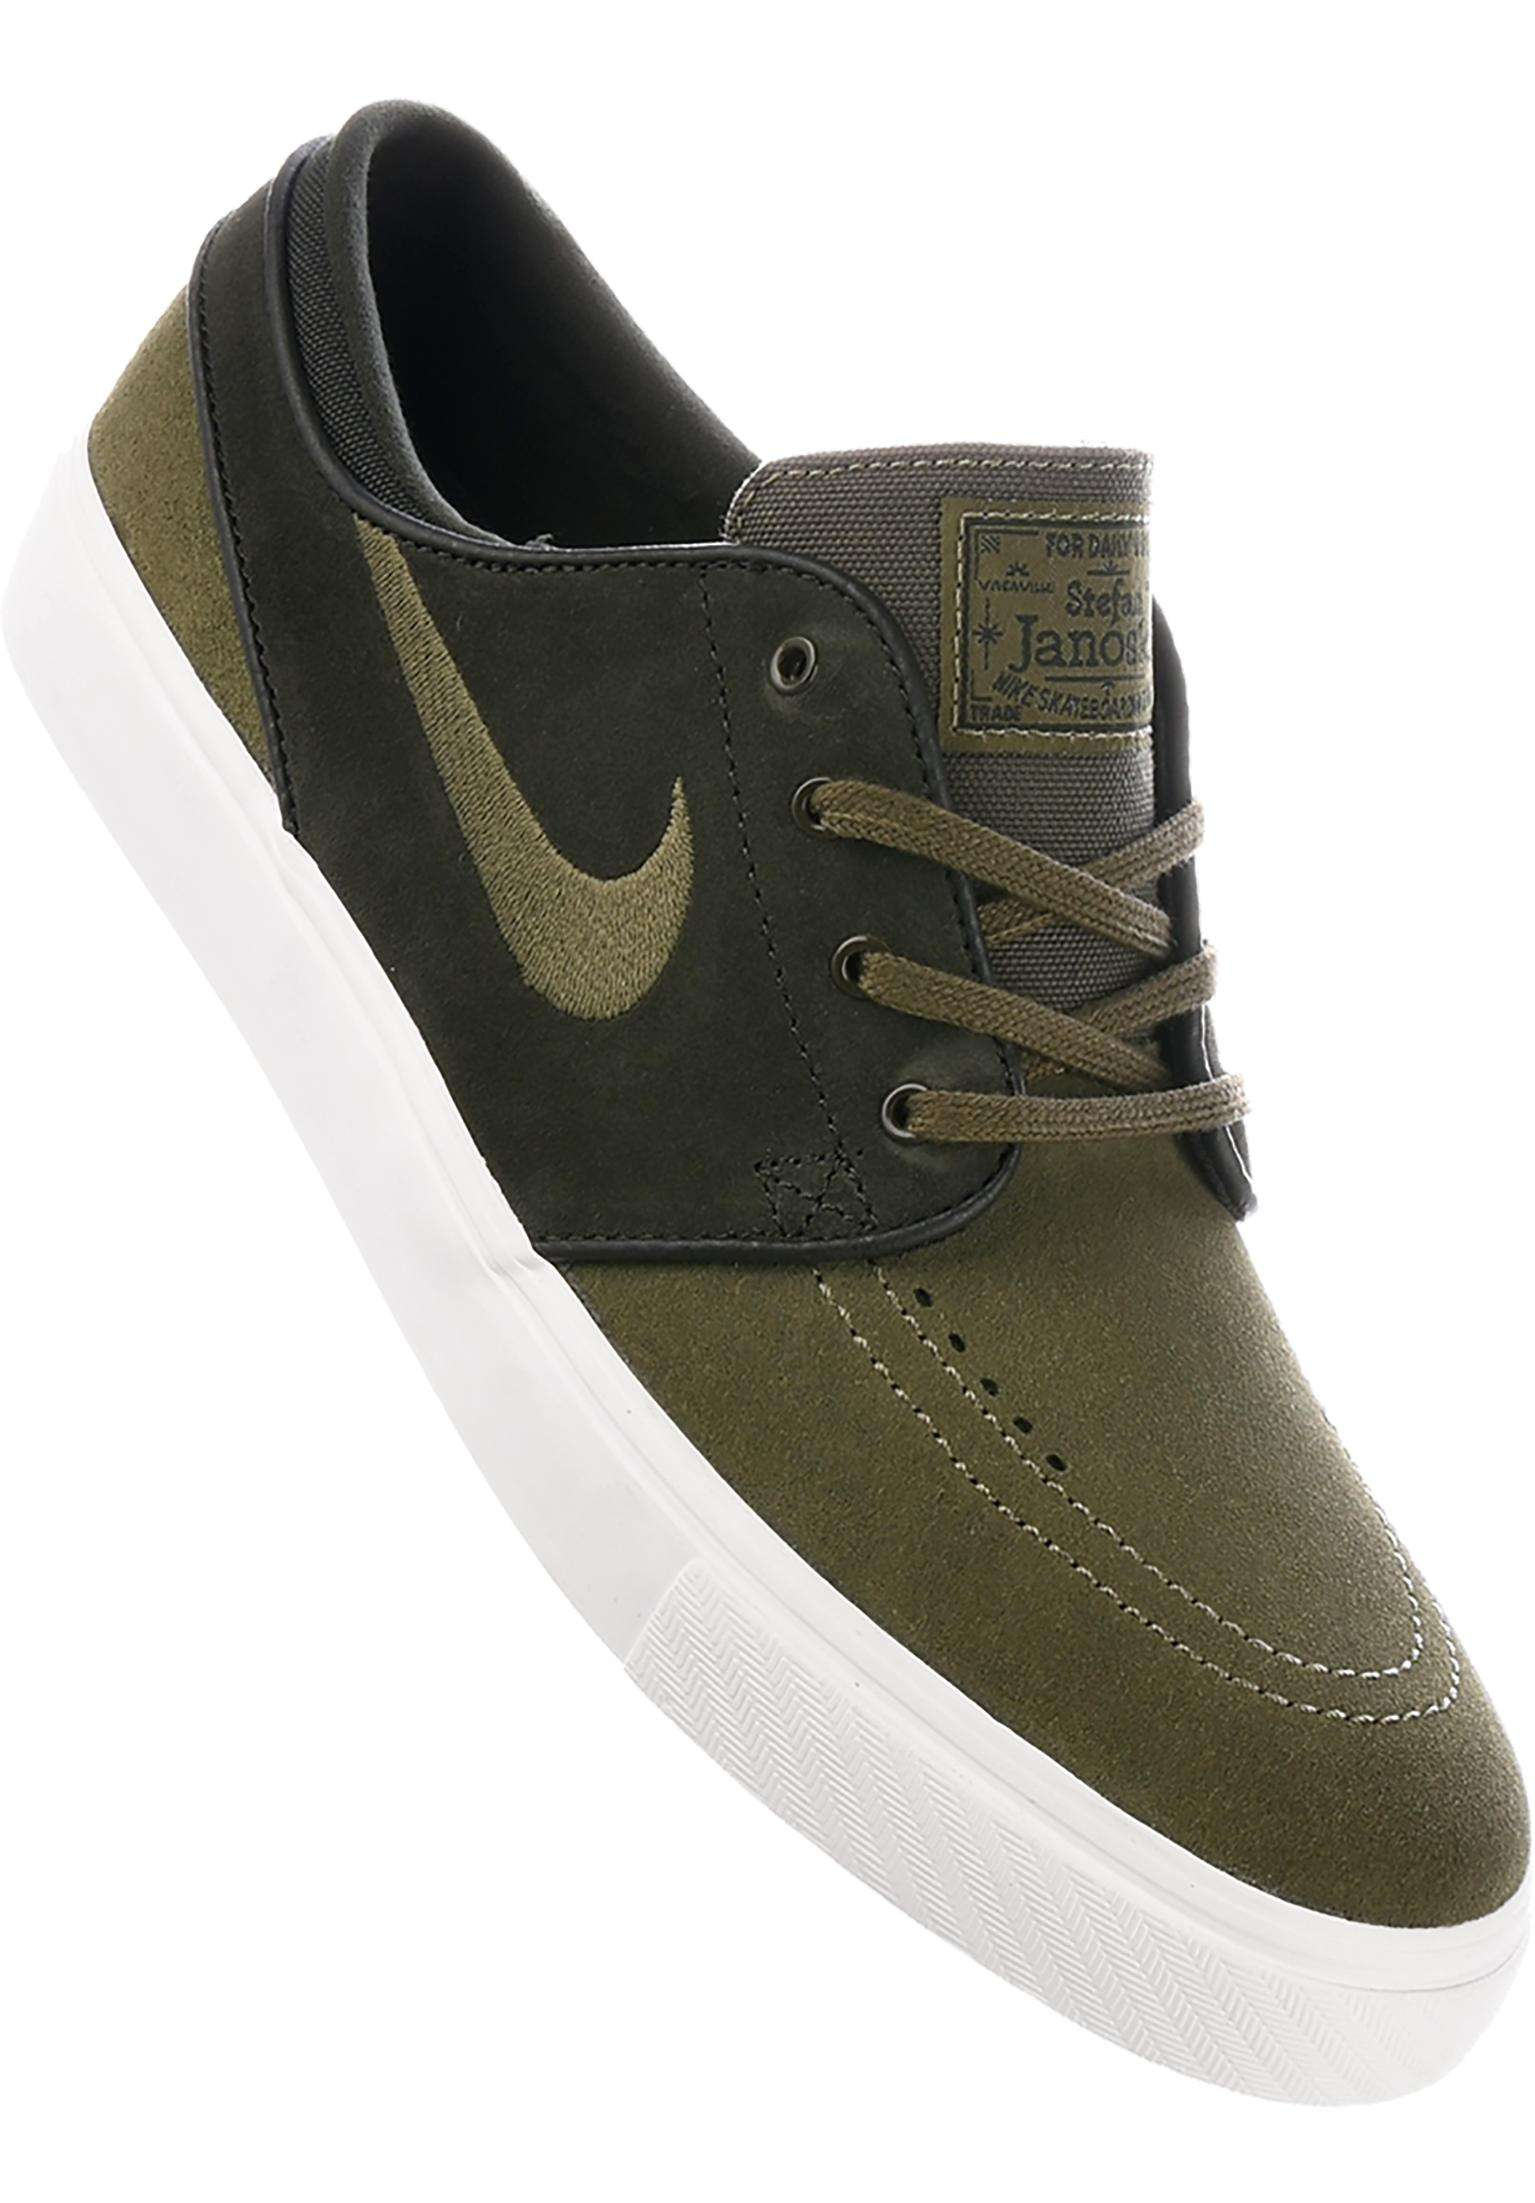 64c1d3d174b4 Zoom Stefan Janoski Nike SB All Shoes in sequoia-meidumolive for Men ...